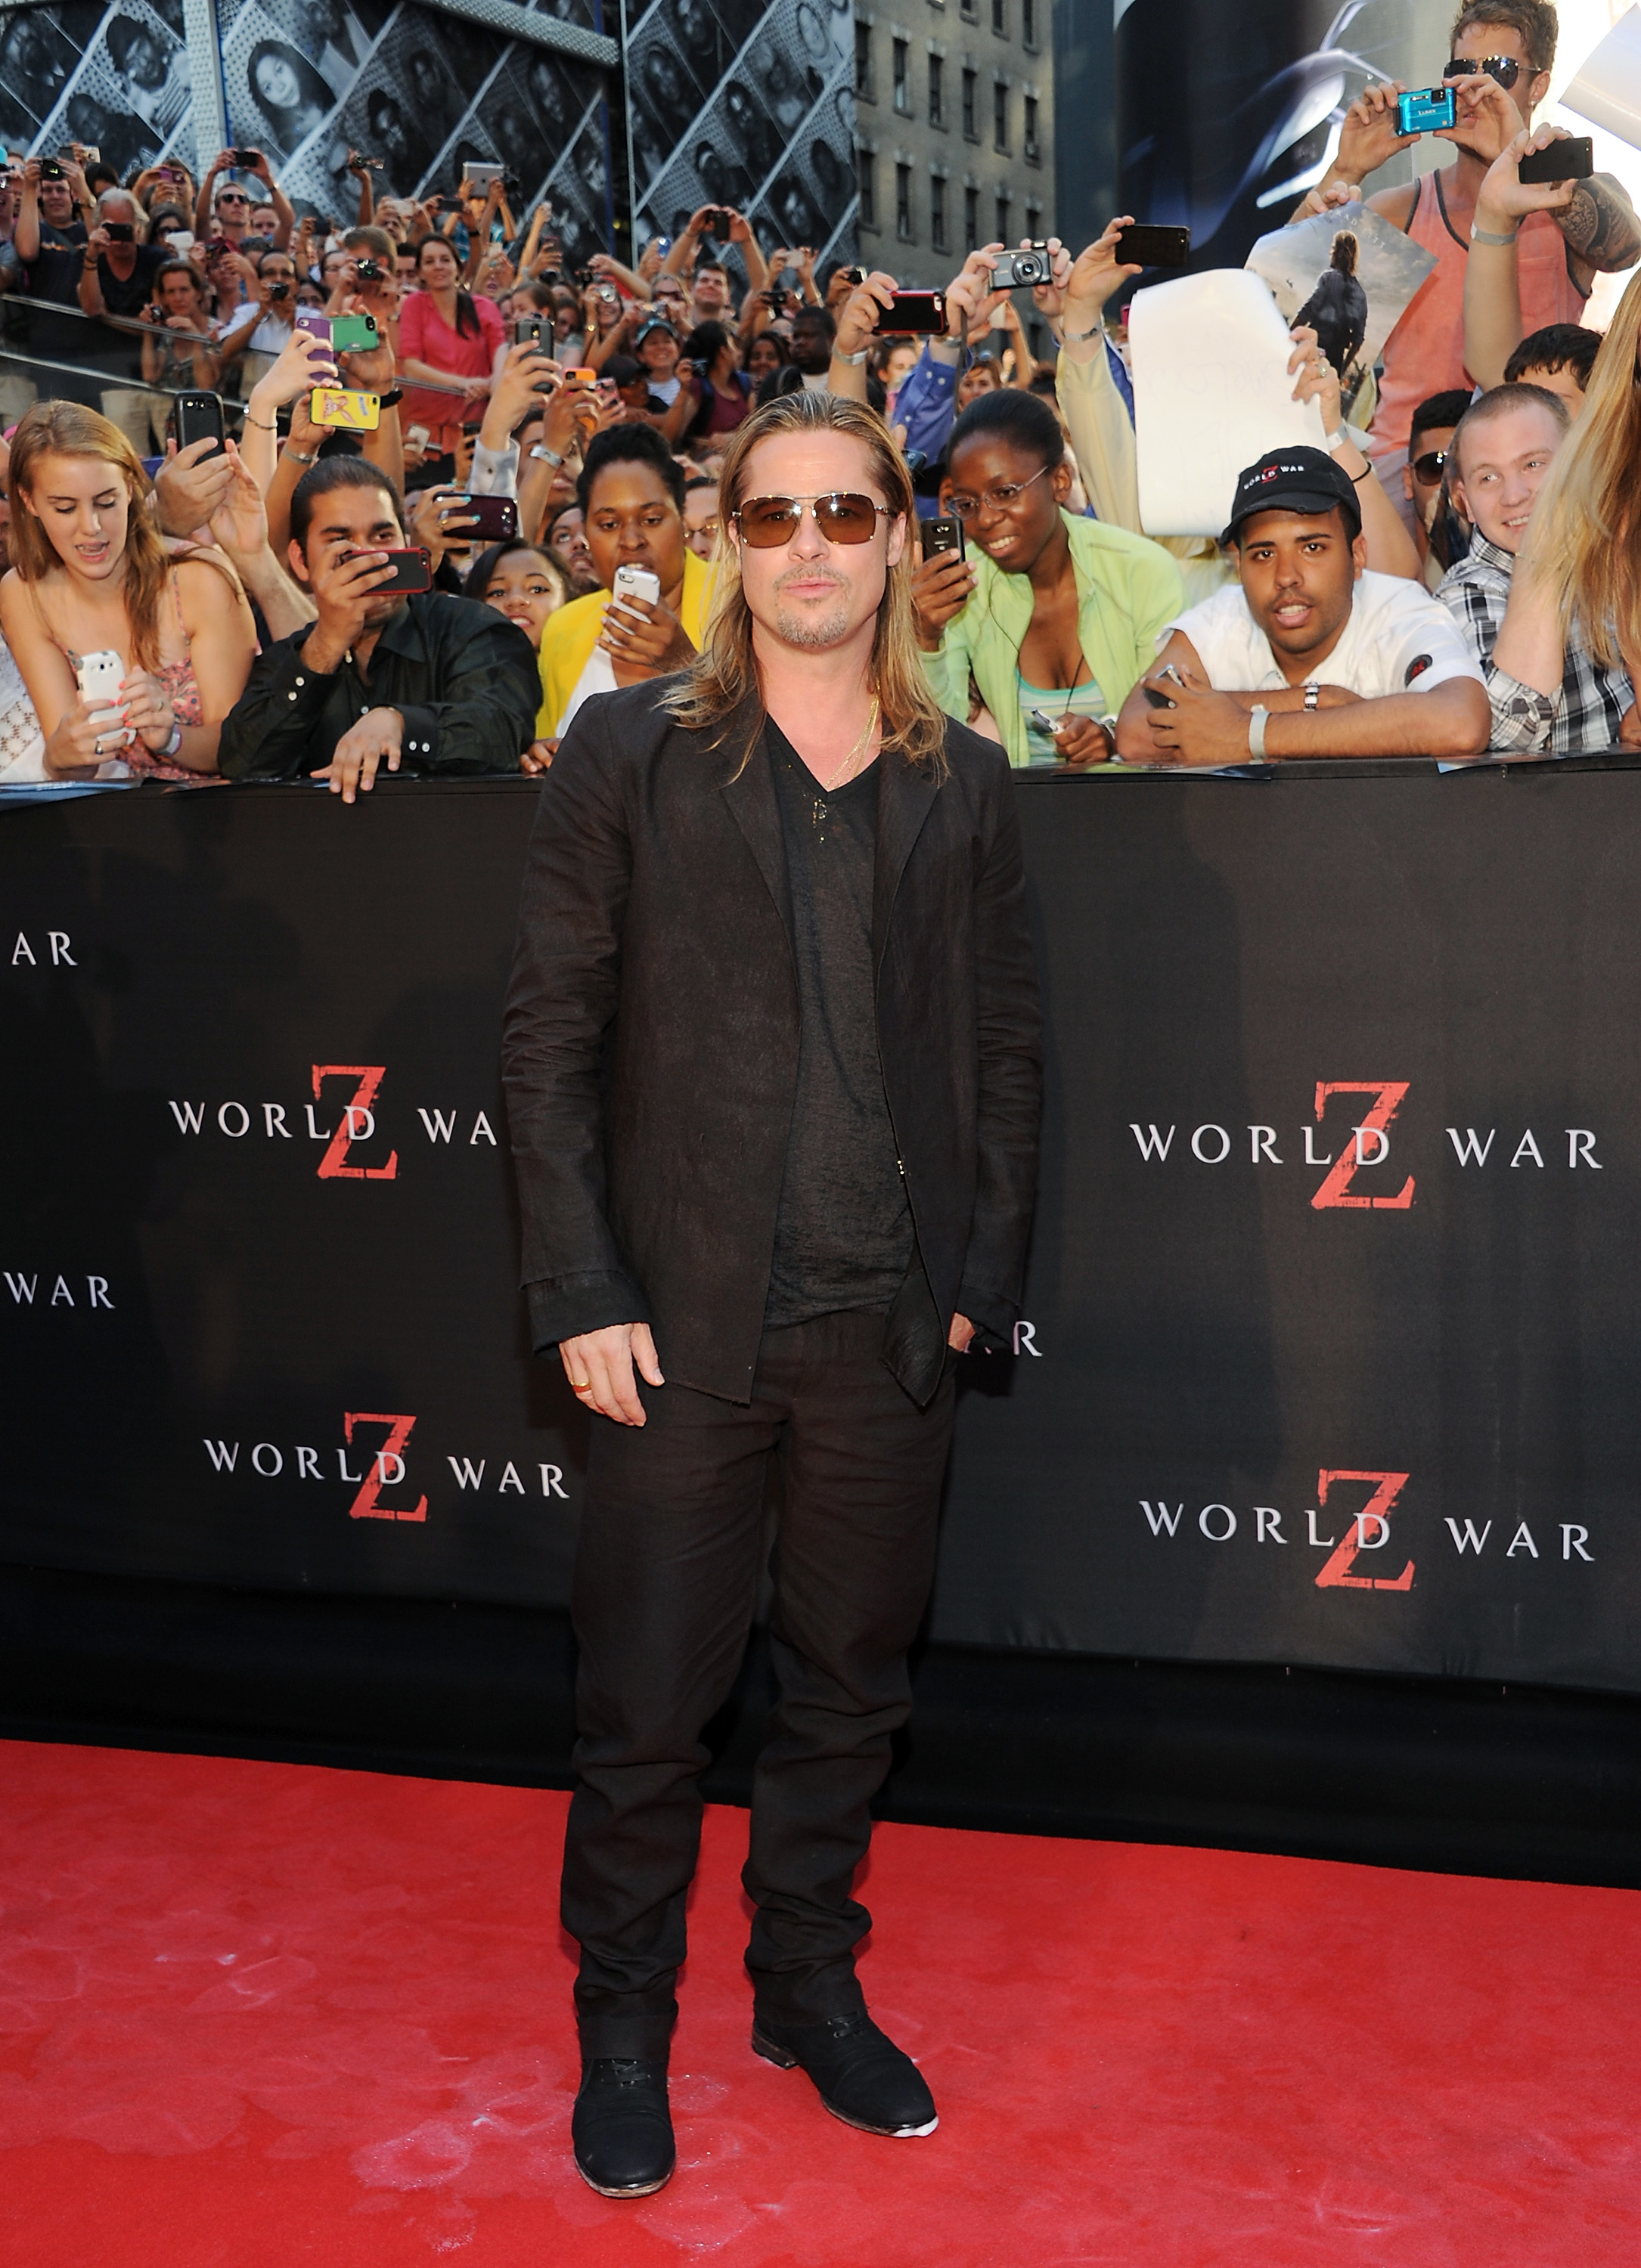 Is Brad Pitt still hot    or not? Cast your vote for his changing looks!